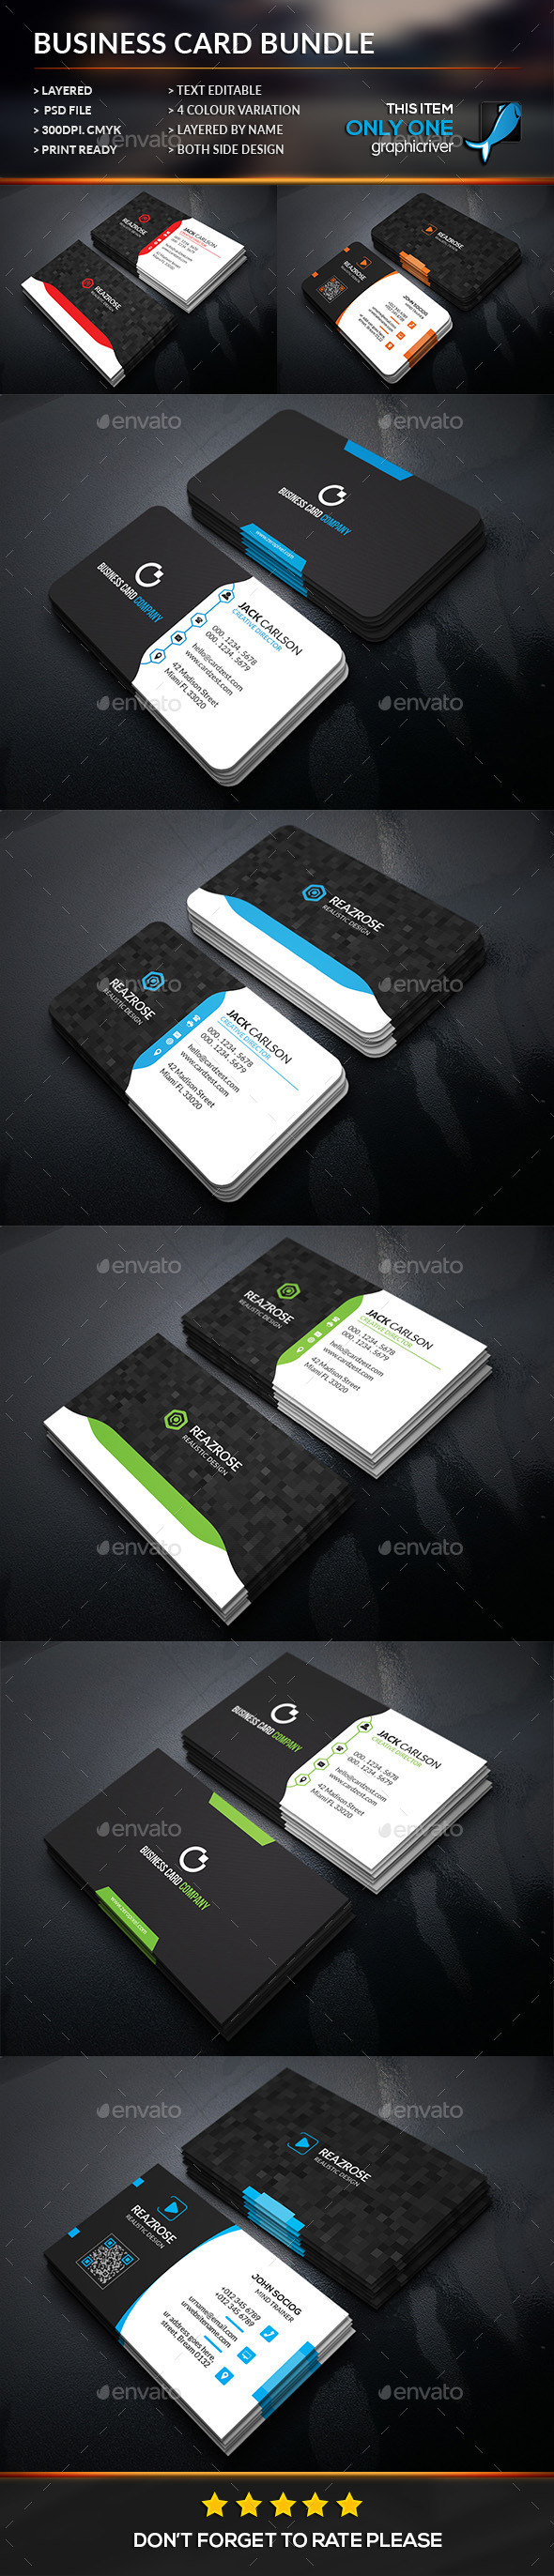 Creative business card bundle business cards print templates creative business card bundle business cards print templates download here http reheart Images